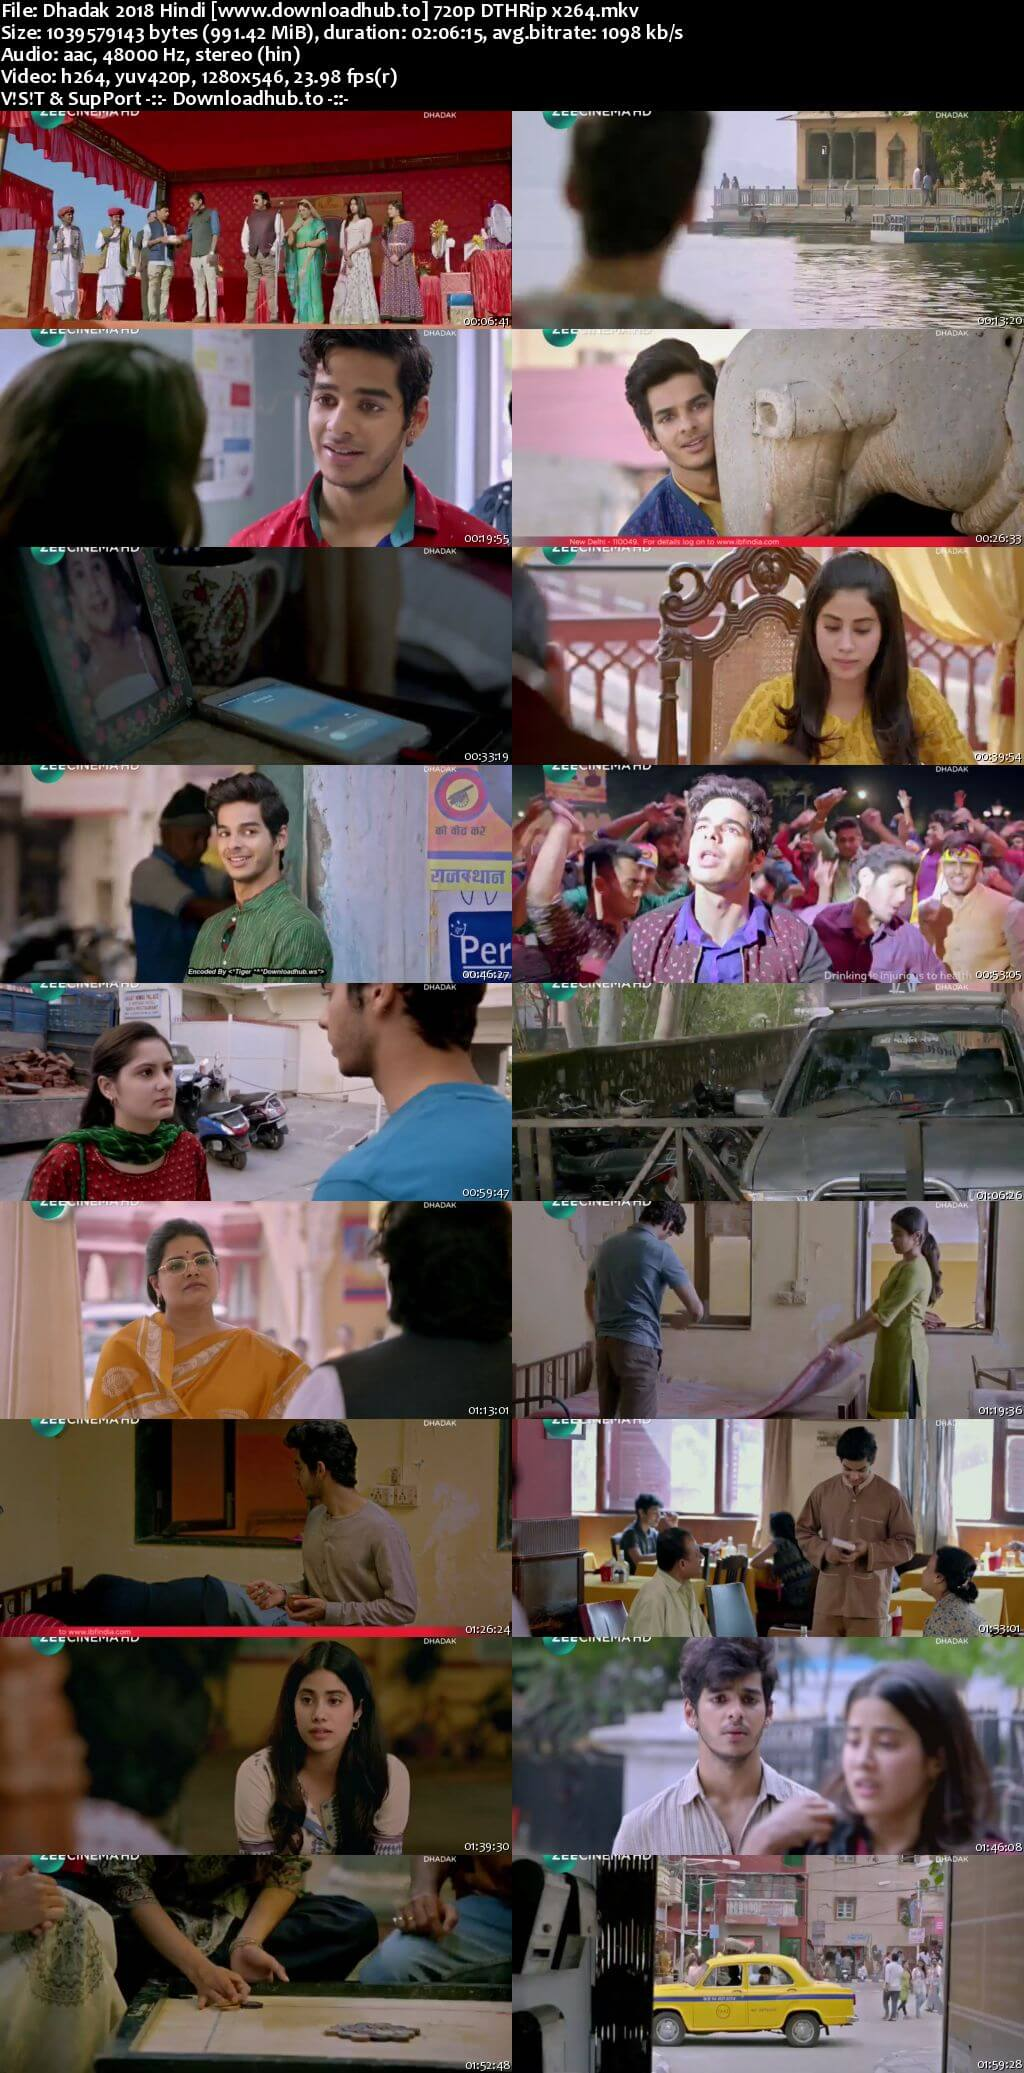 Dhadak 2018 Hindi 720p DTHRip x264